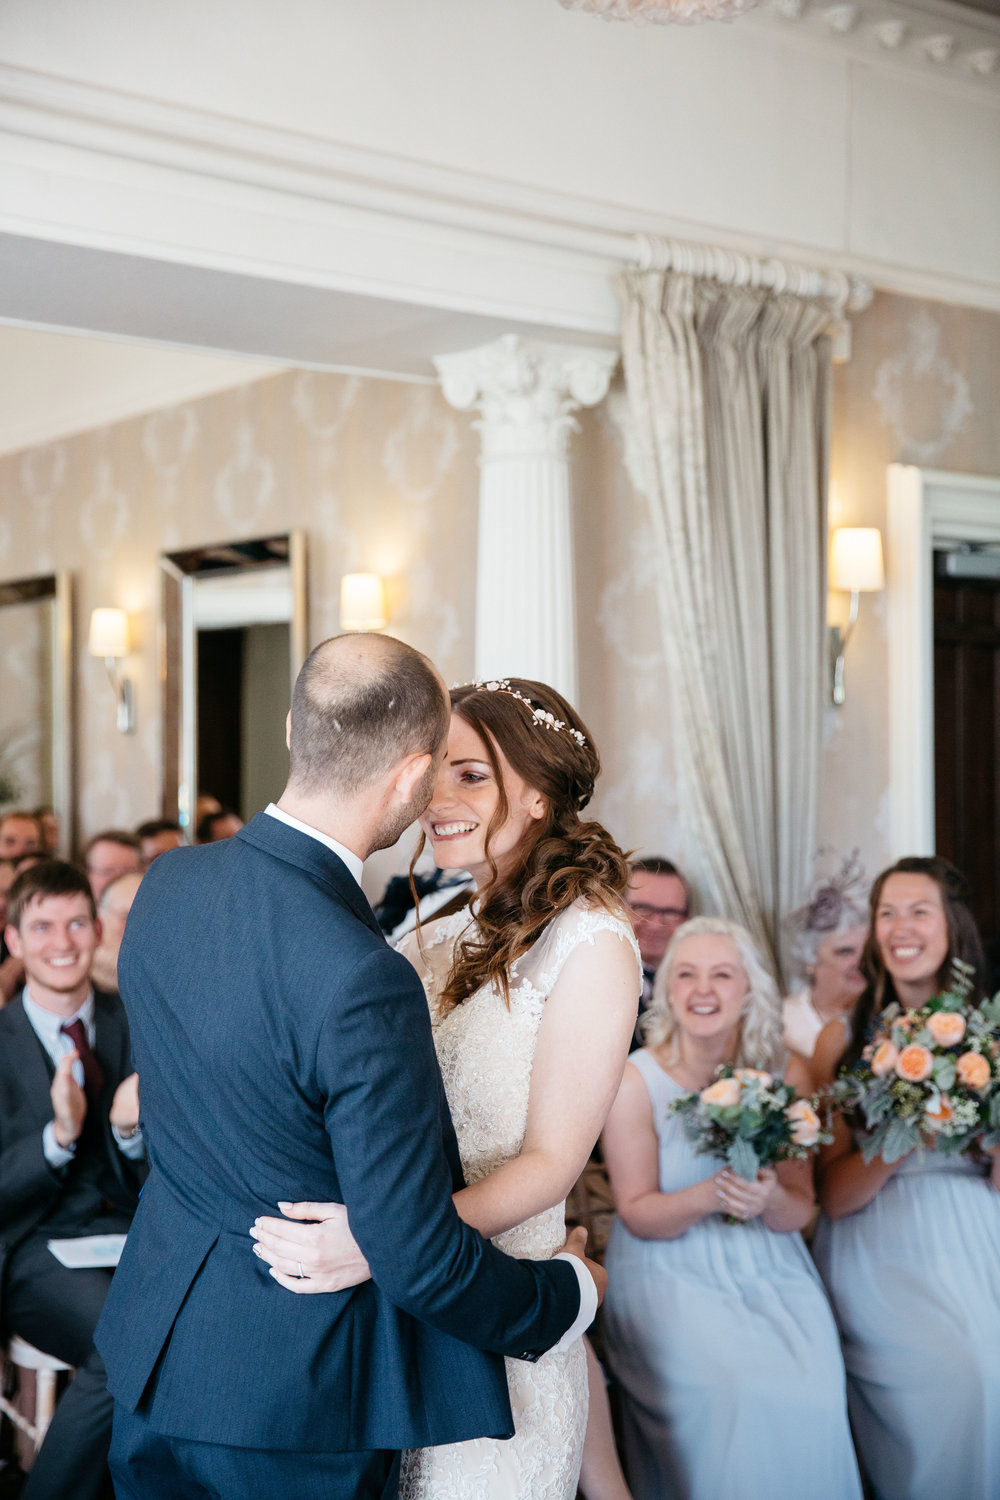 Just married at Falcon Manor Wedding Photography Yorkshire